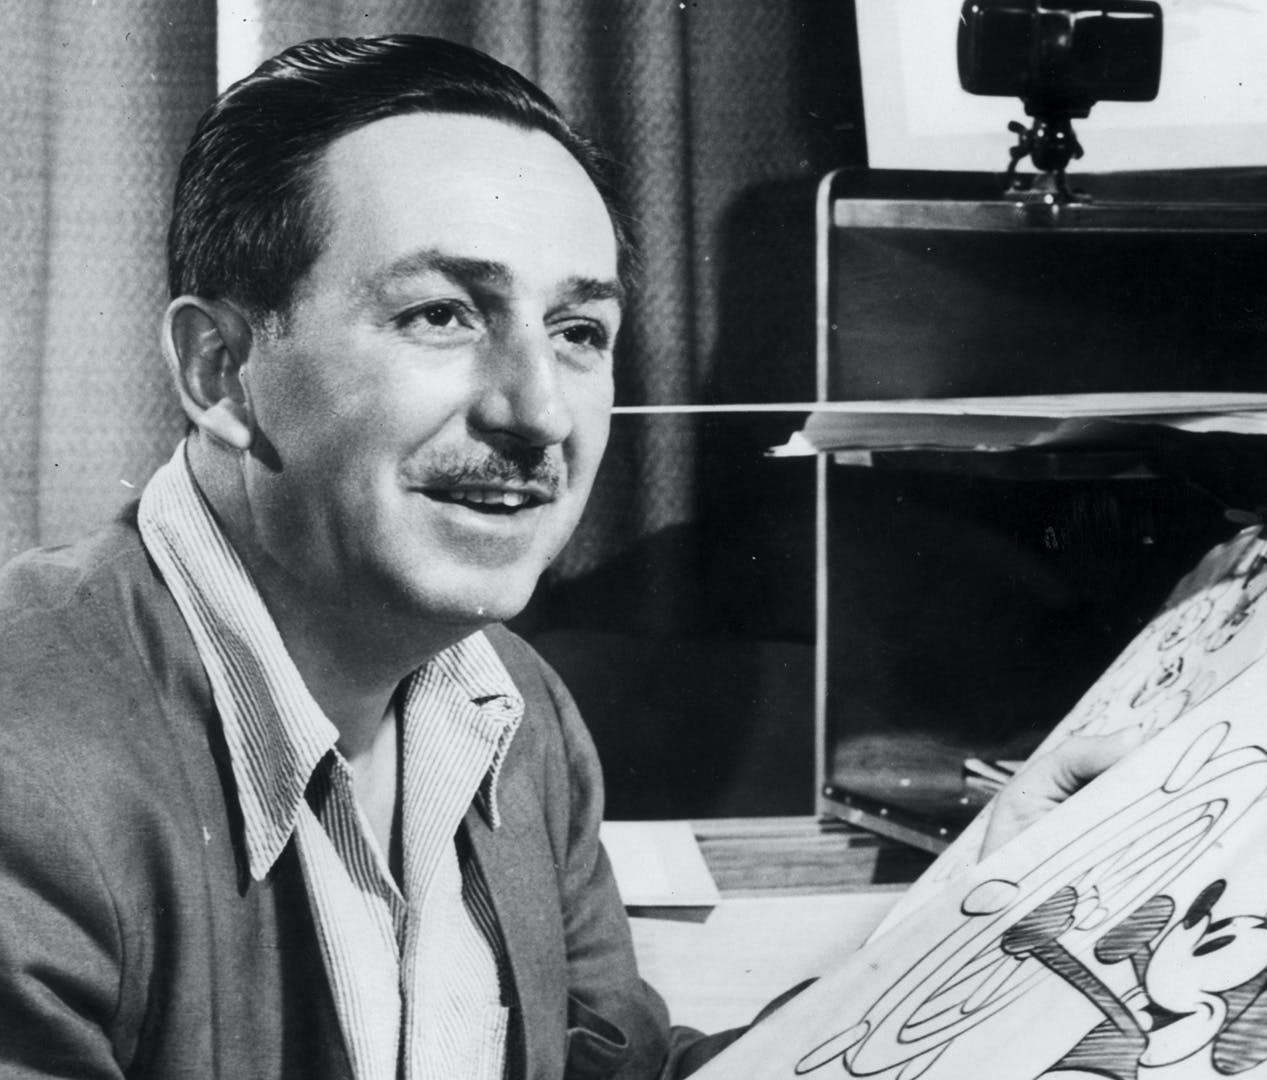 https www.biography.com .image MTYyMTYxNzU3NTAxMDA3NDg1 disney drawing mickey photo by hulton archive getty images e1608135498376 20 Magical Facts You Might Not Have Known About Walt Disney